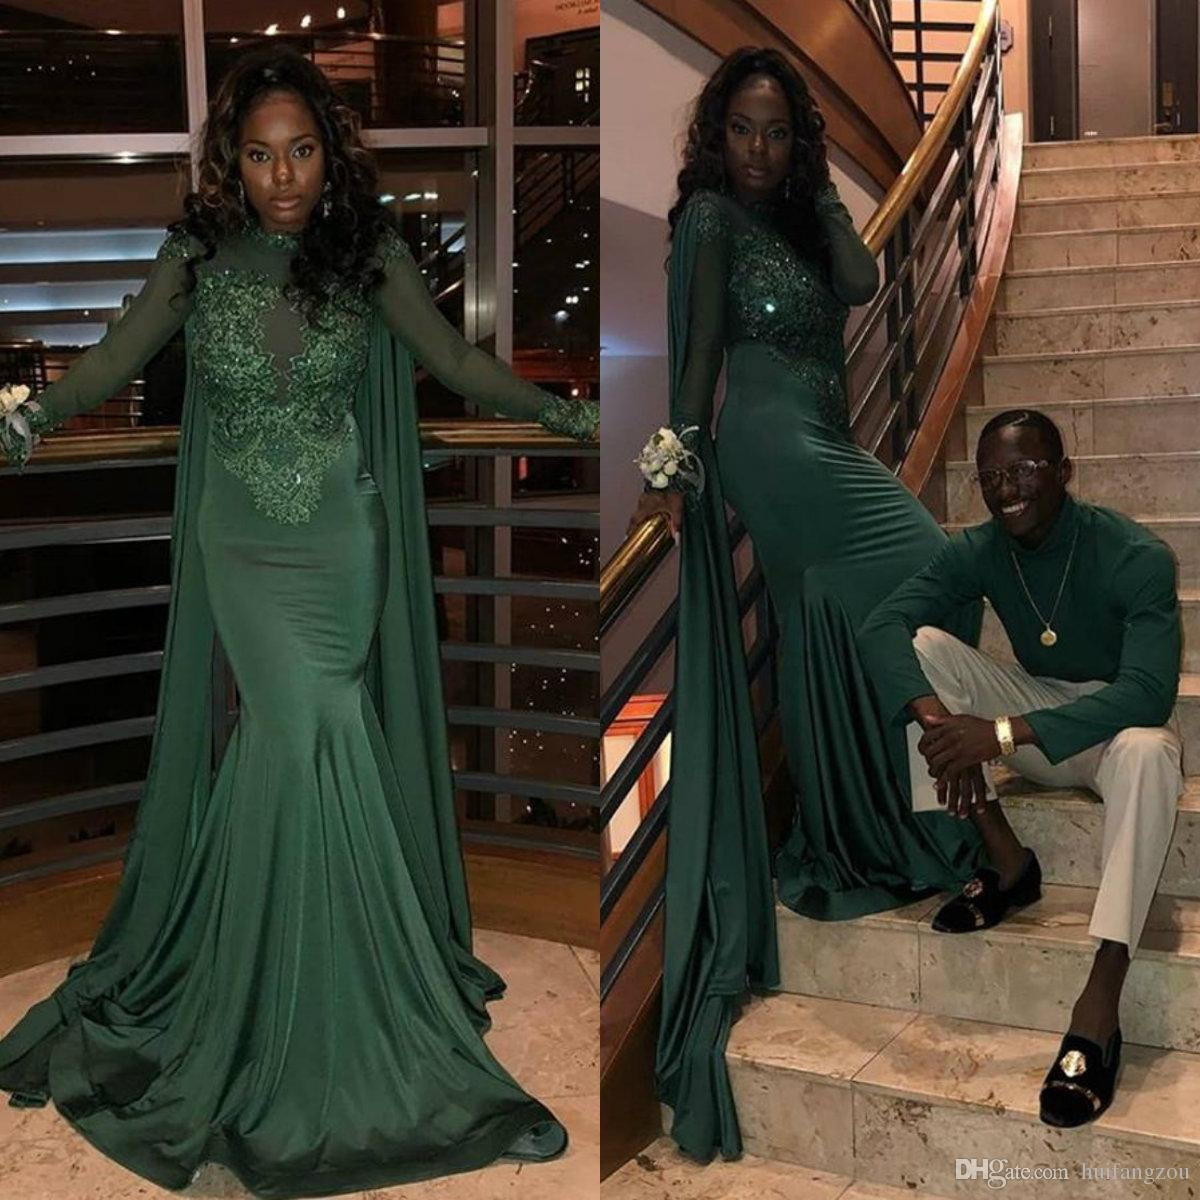 Emerald Green Mermaid Prom Dresses Arabic Dubai Long Sleeve Lace Appliques  Illusion Sequined Evening Dress Black Girls Formal Party Dresses Online Prom  ... 82f6920f2aca